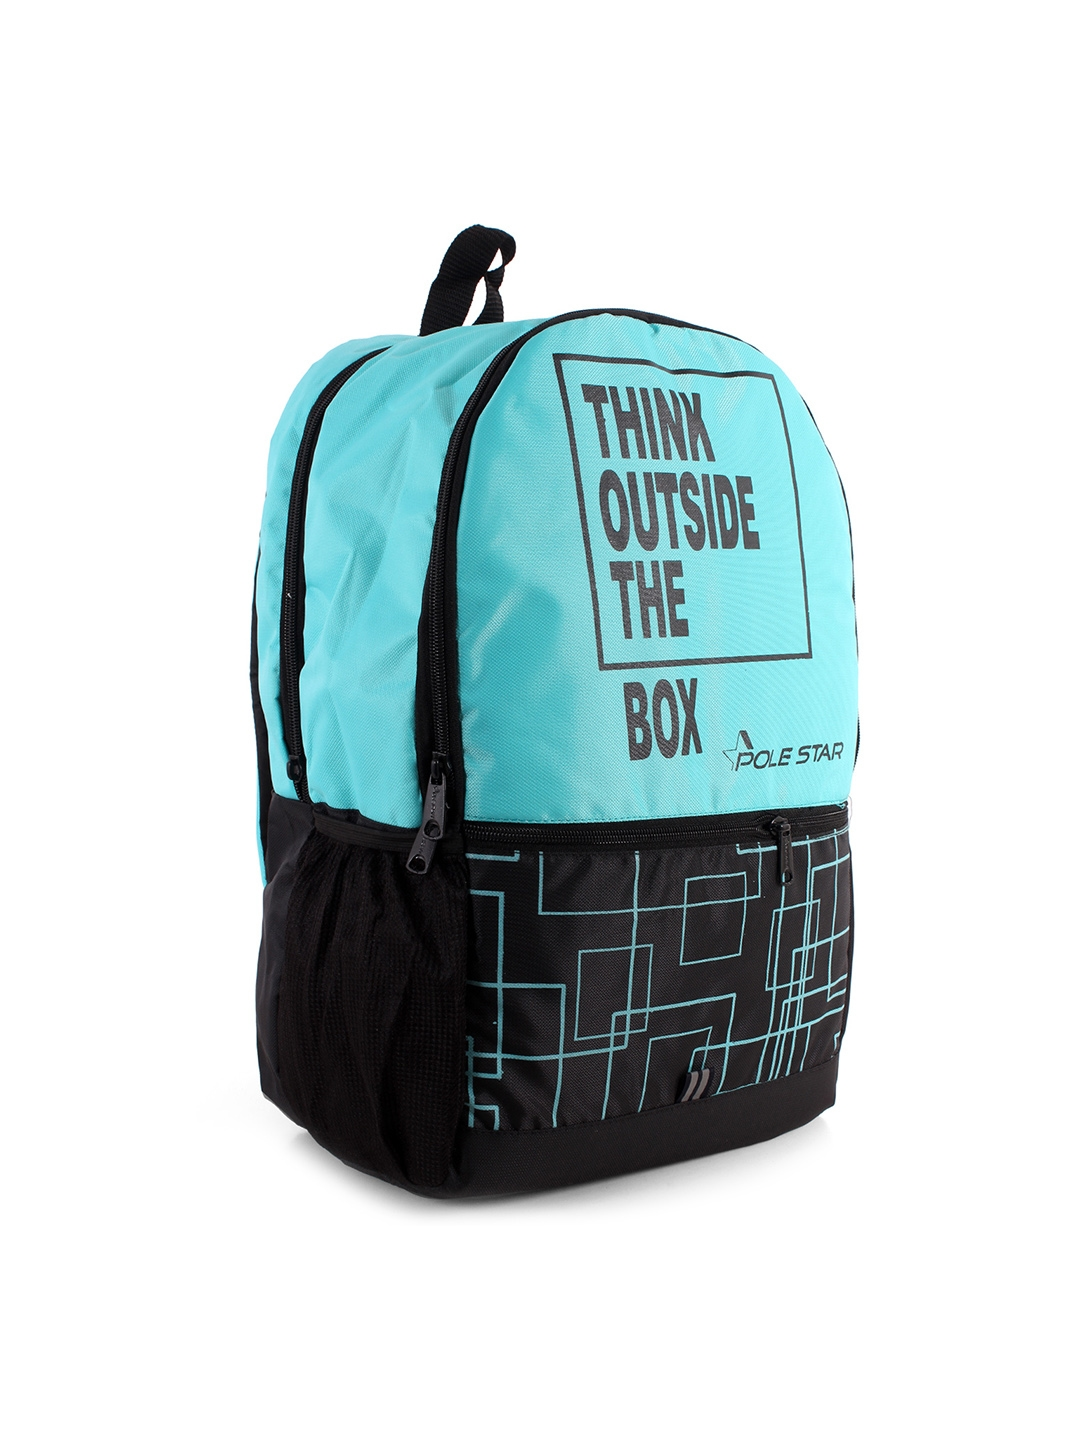 3bd809473970 Buy POLE STAR Unisex Turquoise Blue   Black Graphic Backpack ...